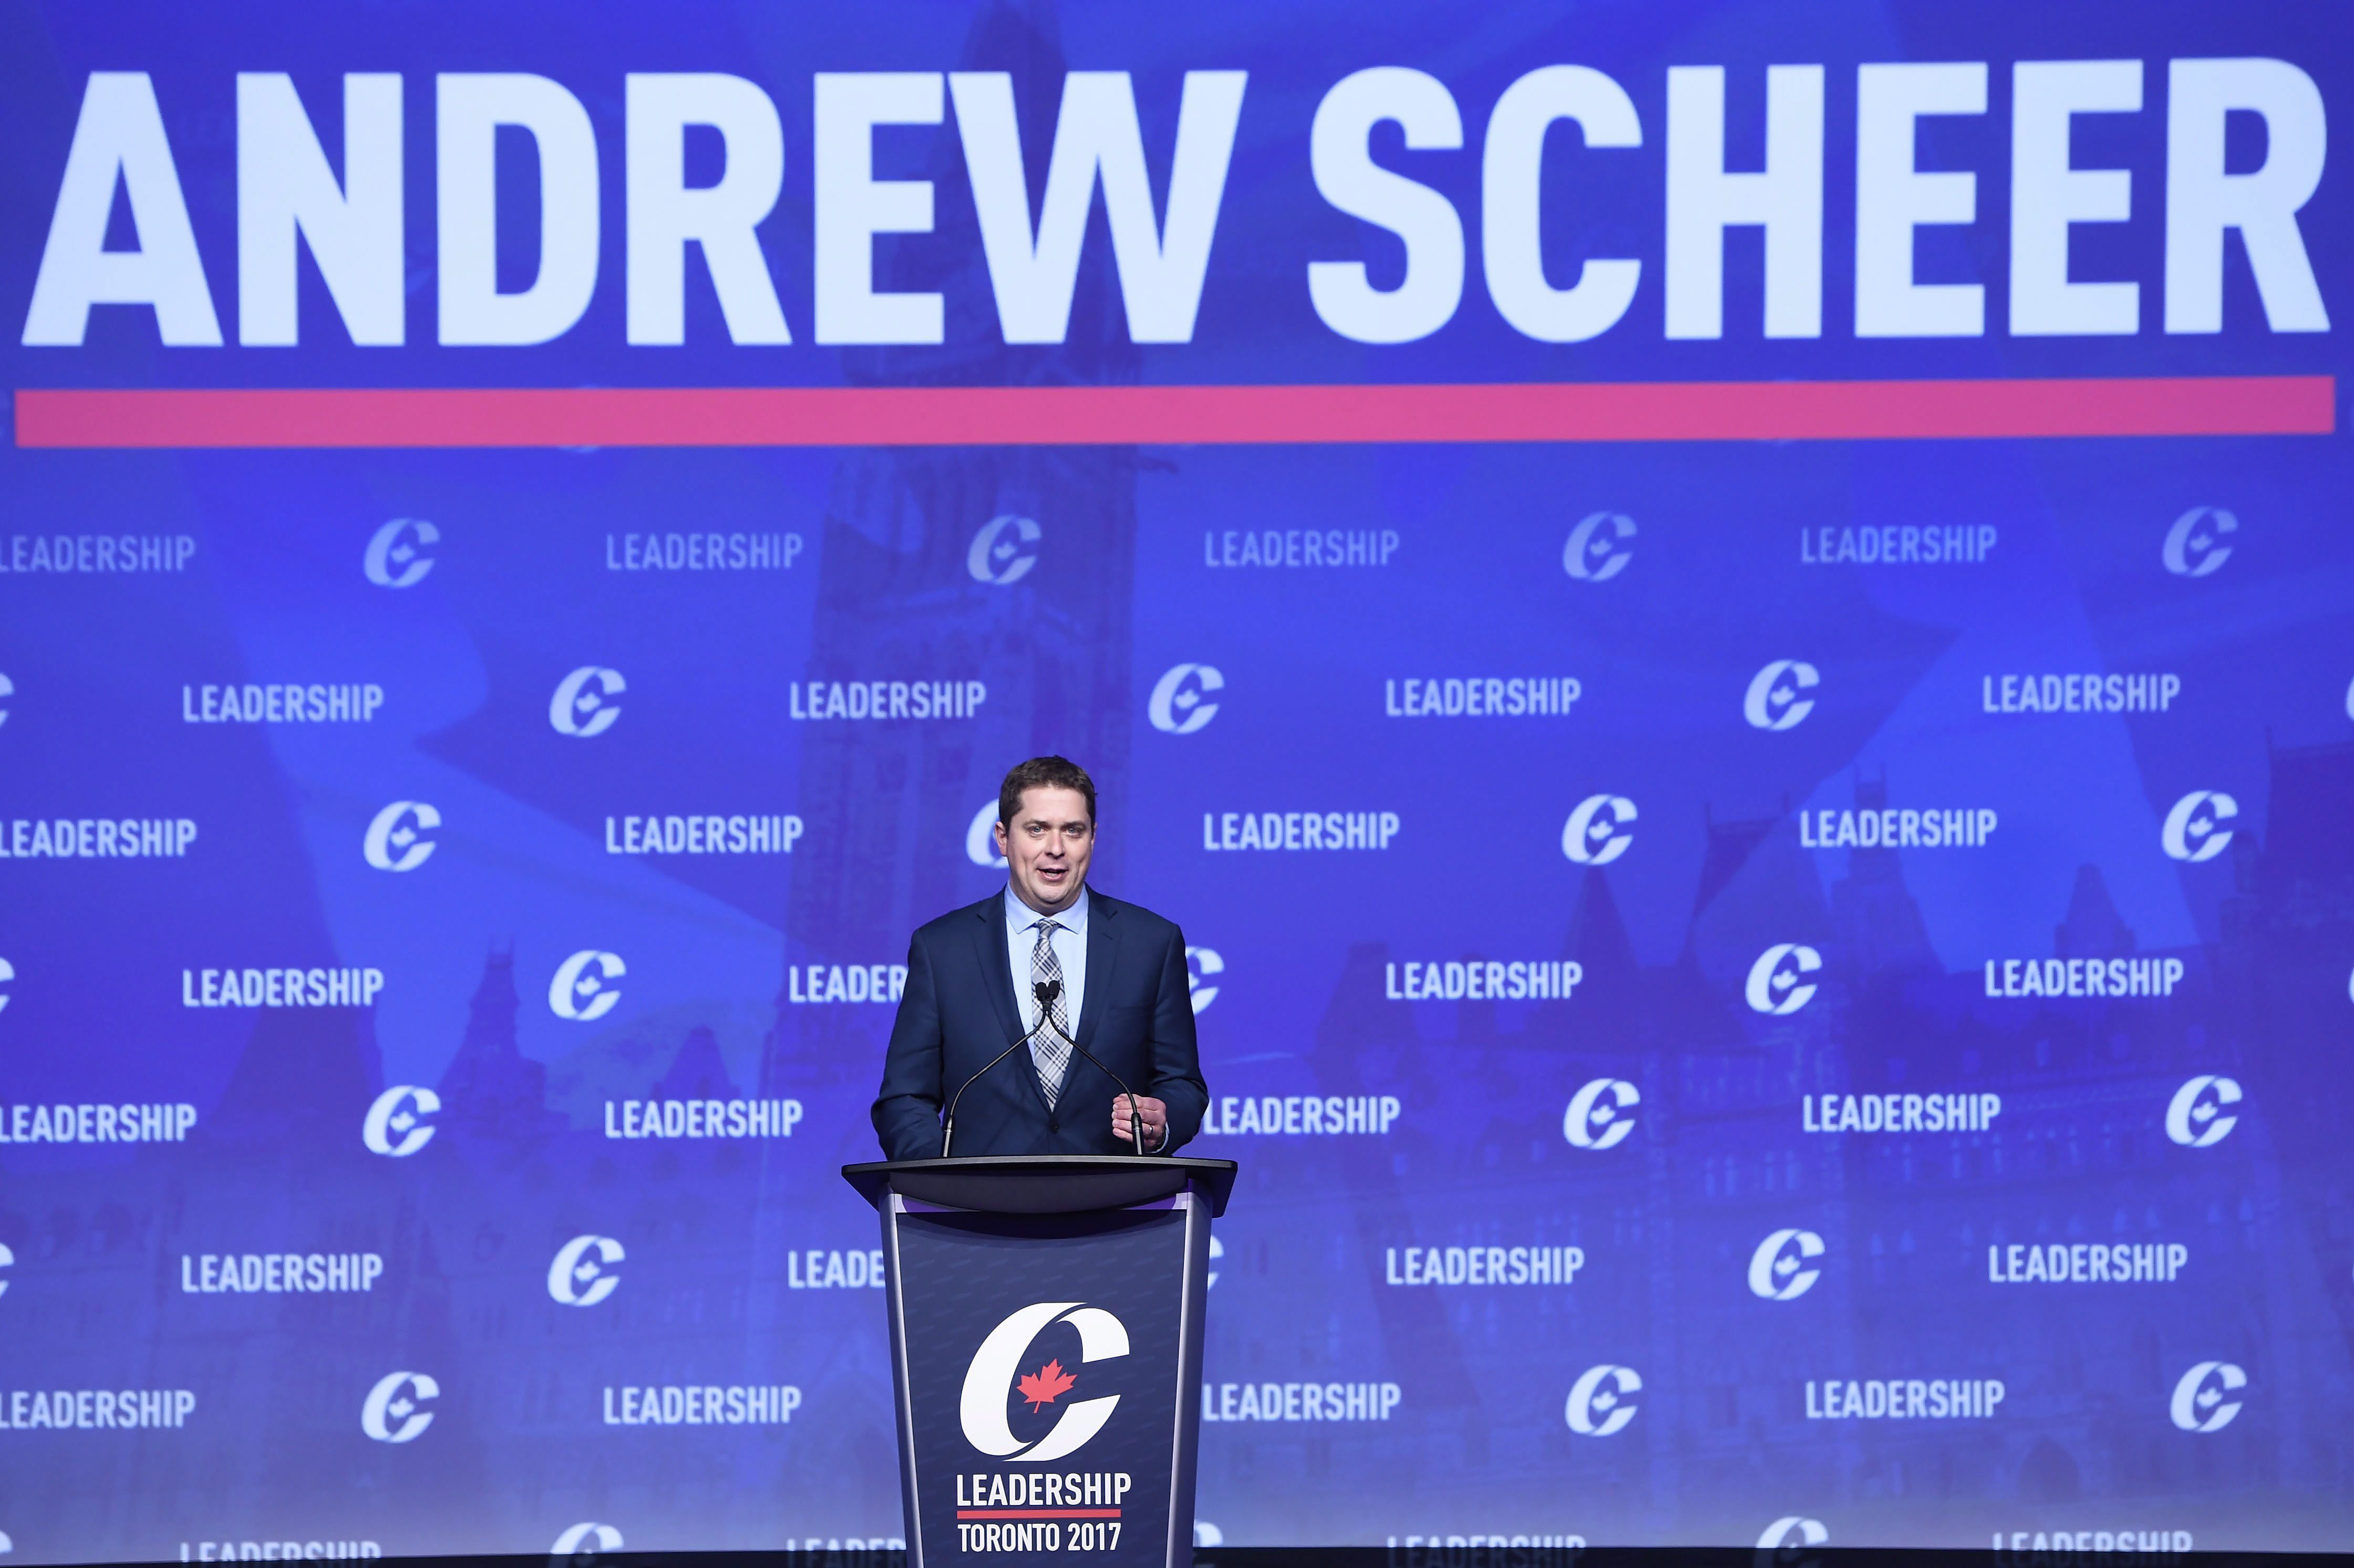 Andrew Scheer emerges as new Conservative leader